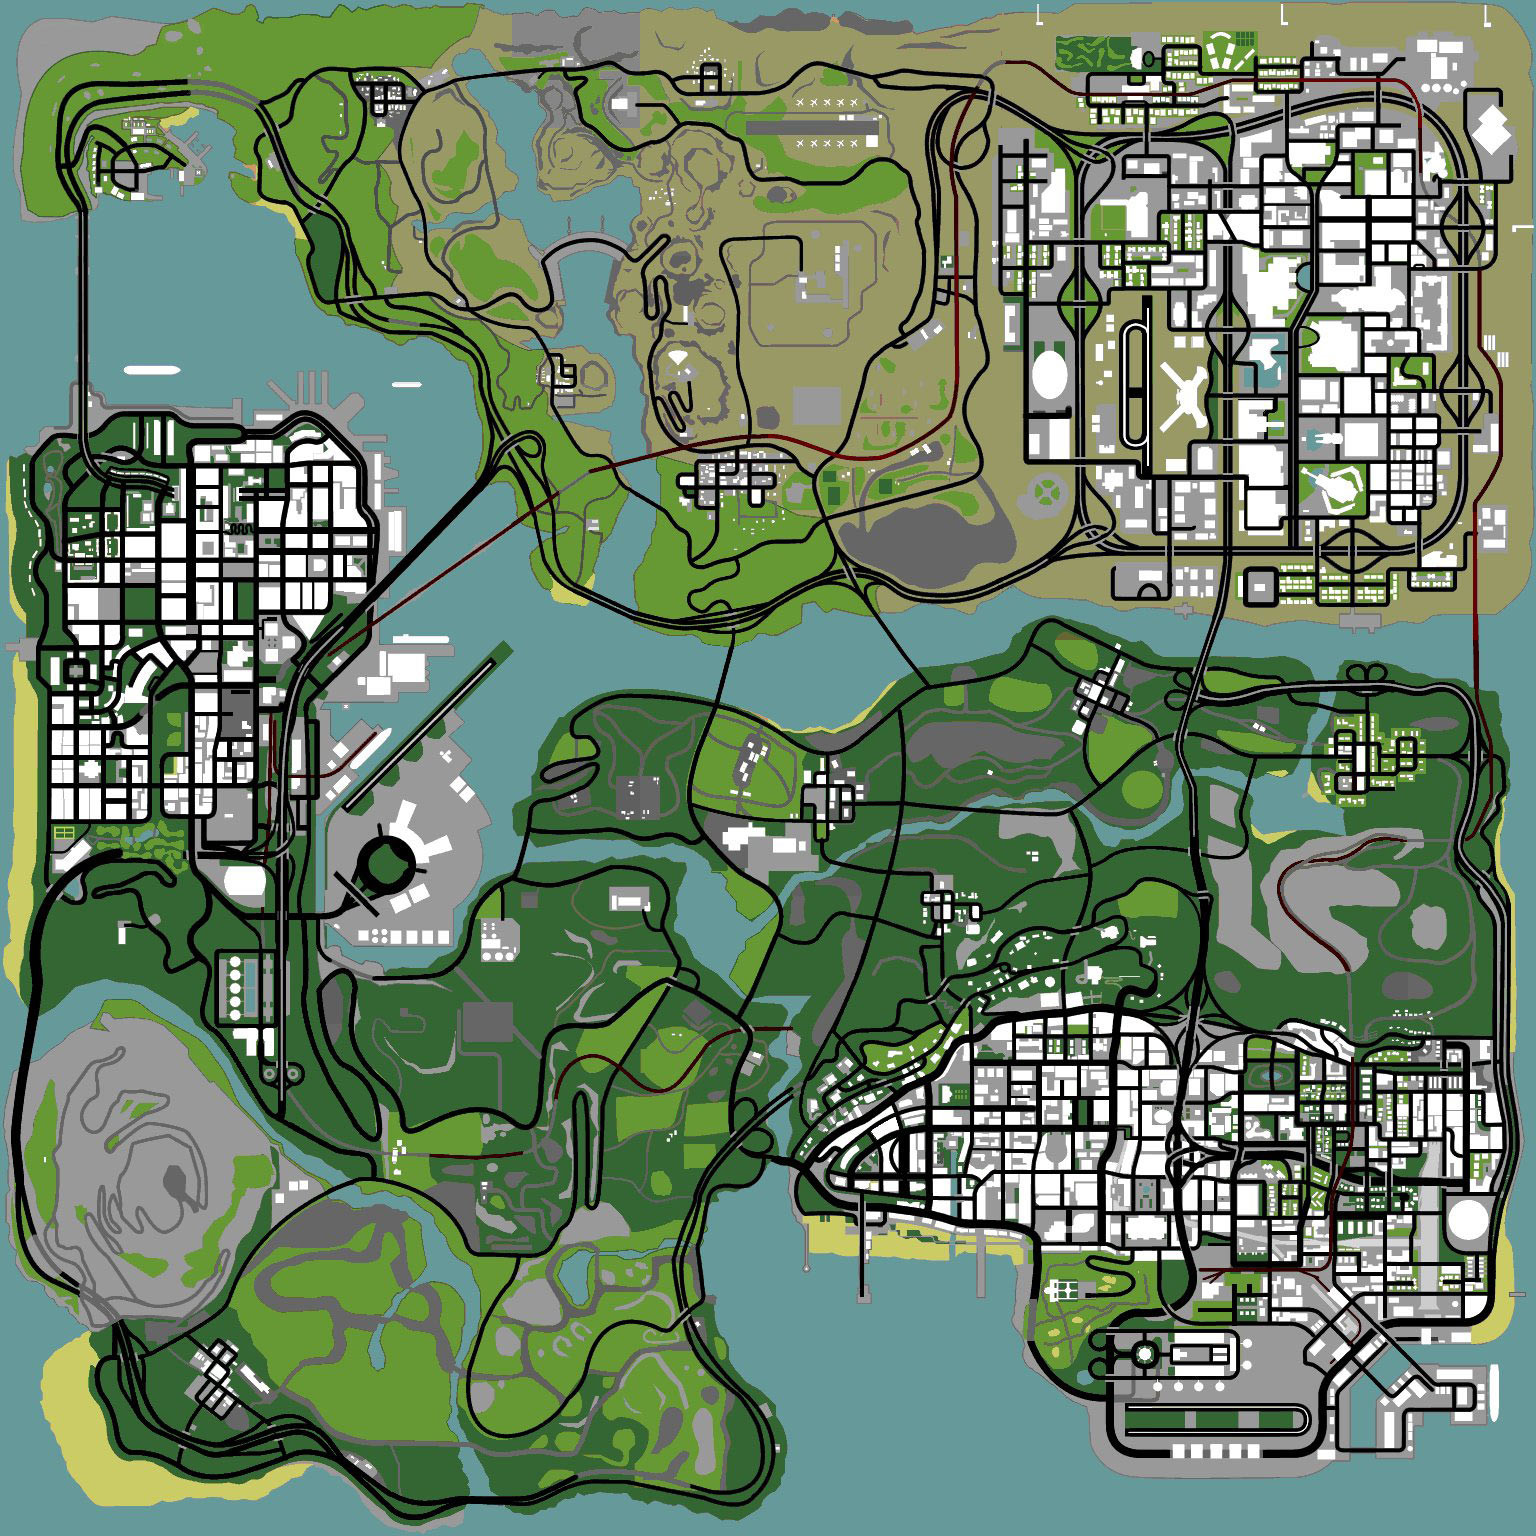 Gta V Printable Map Inspirational The Gta Place San Andreas Maps